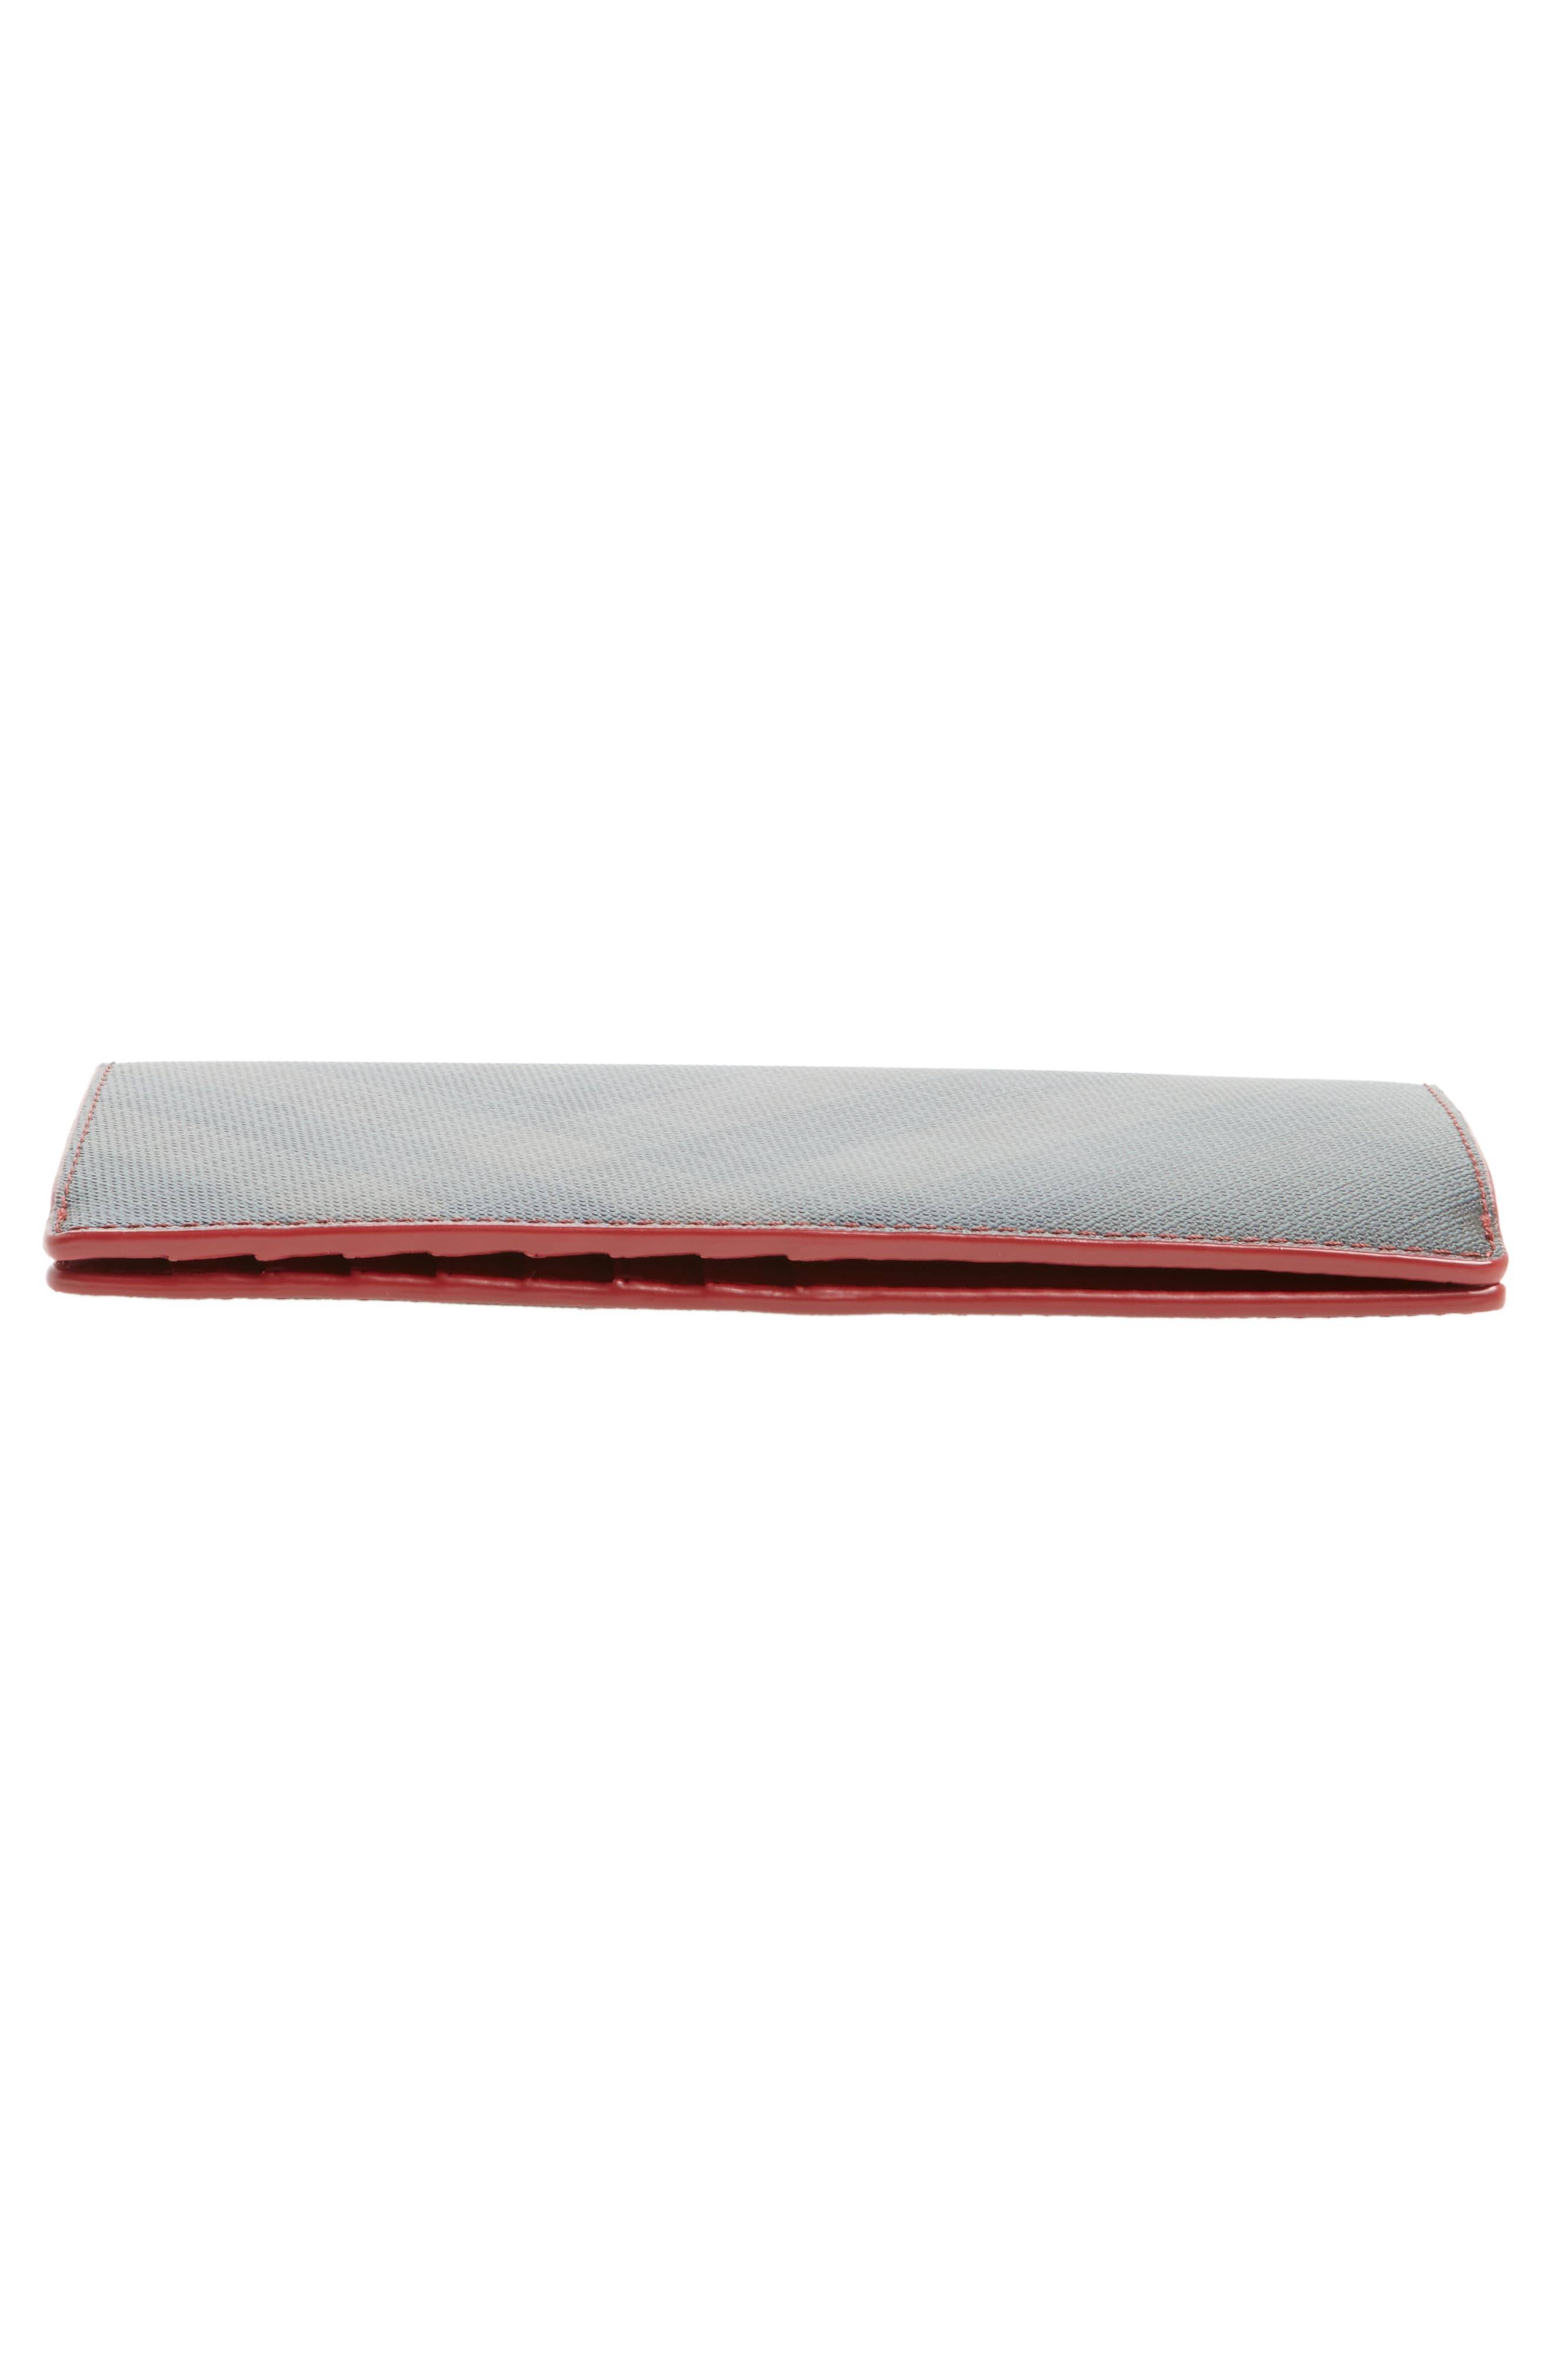 Check Wallet,                             Alternate thumbnail 4, color,                             Chocolate/ Red